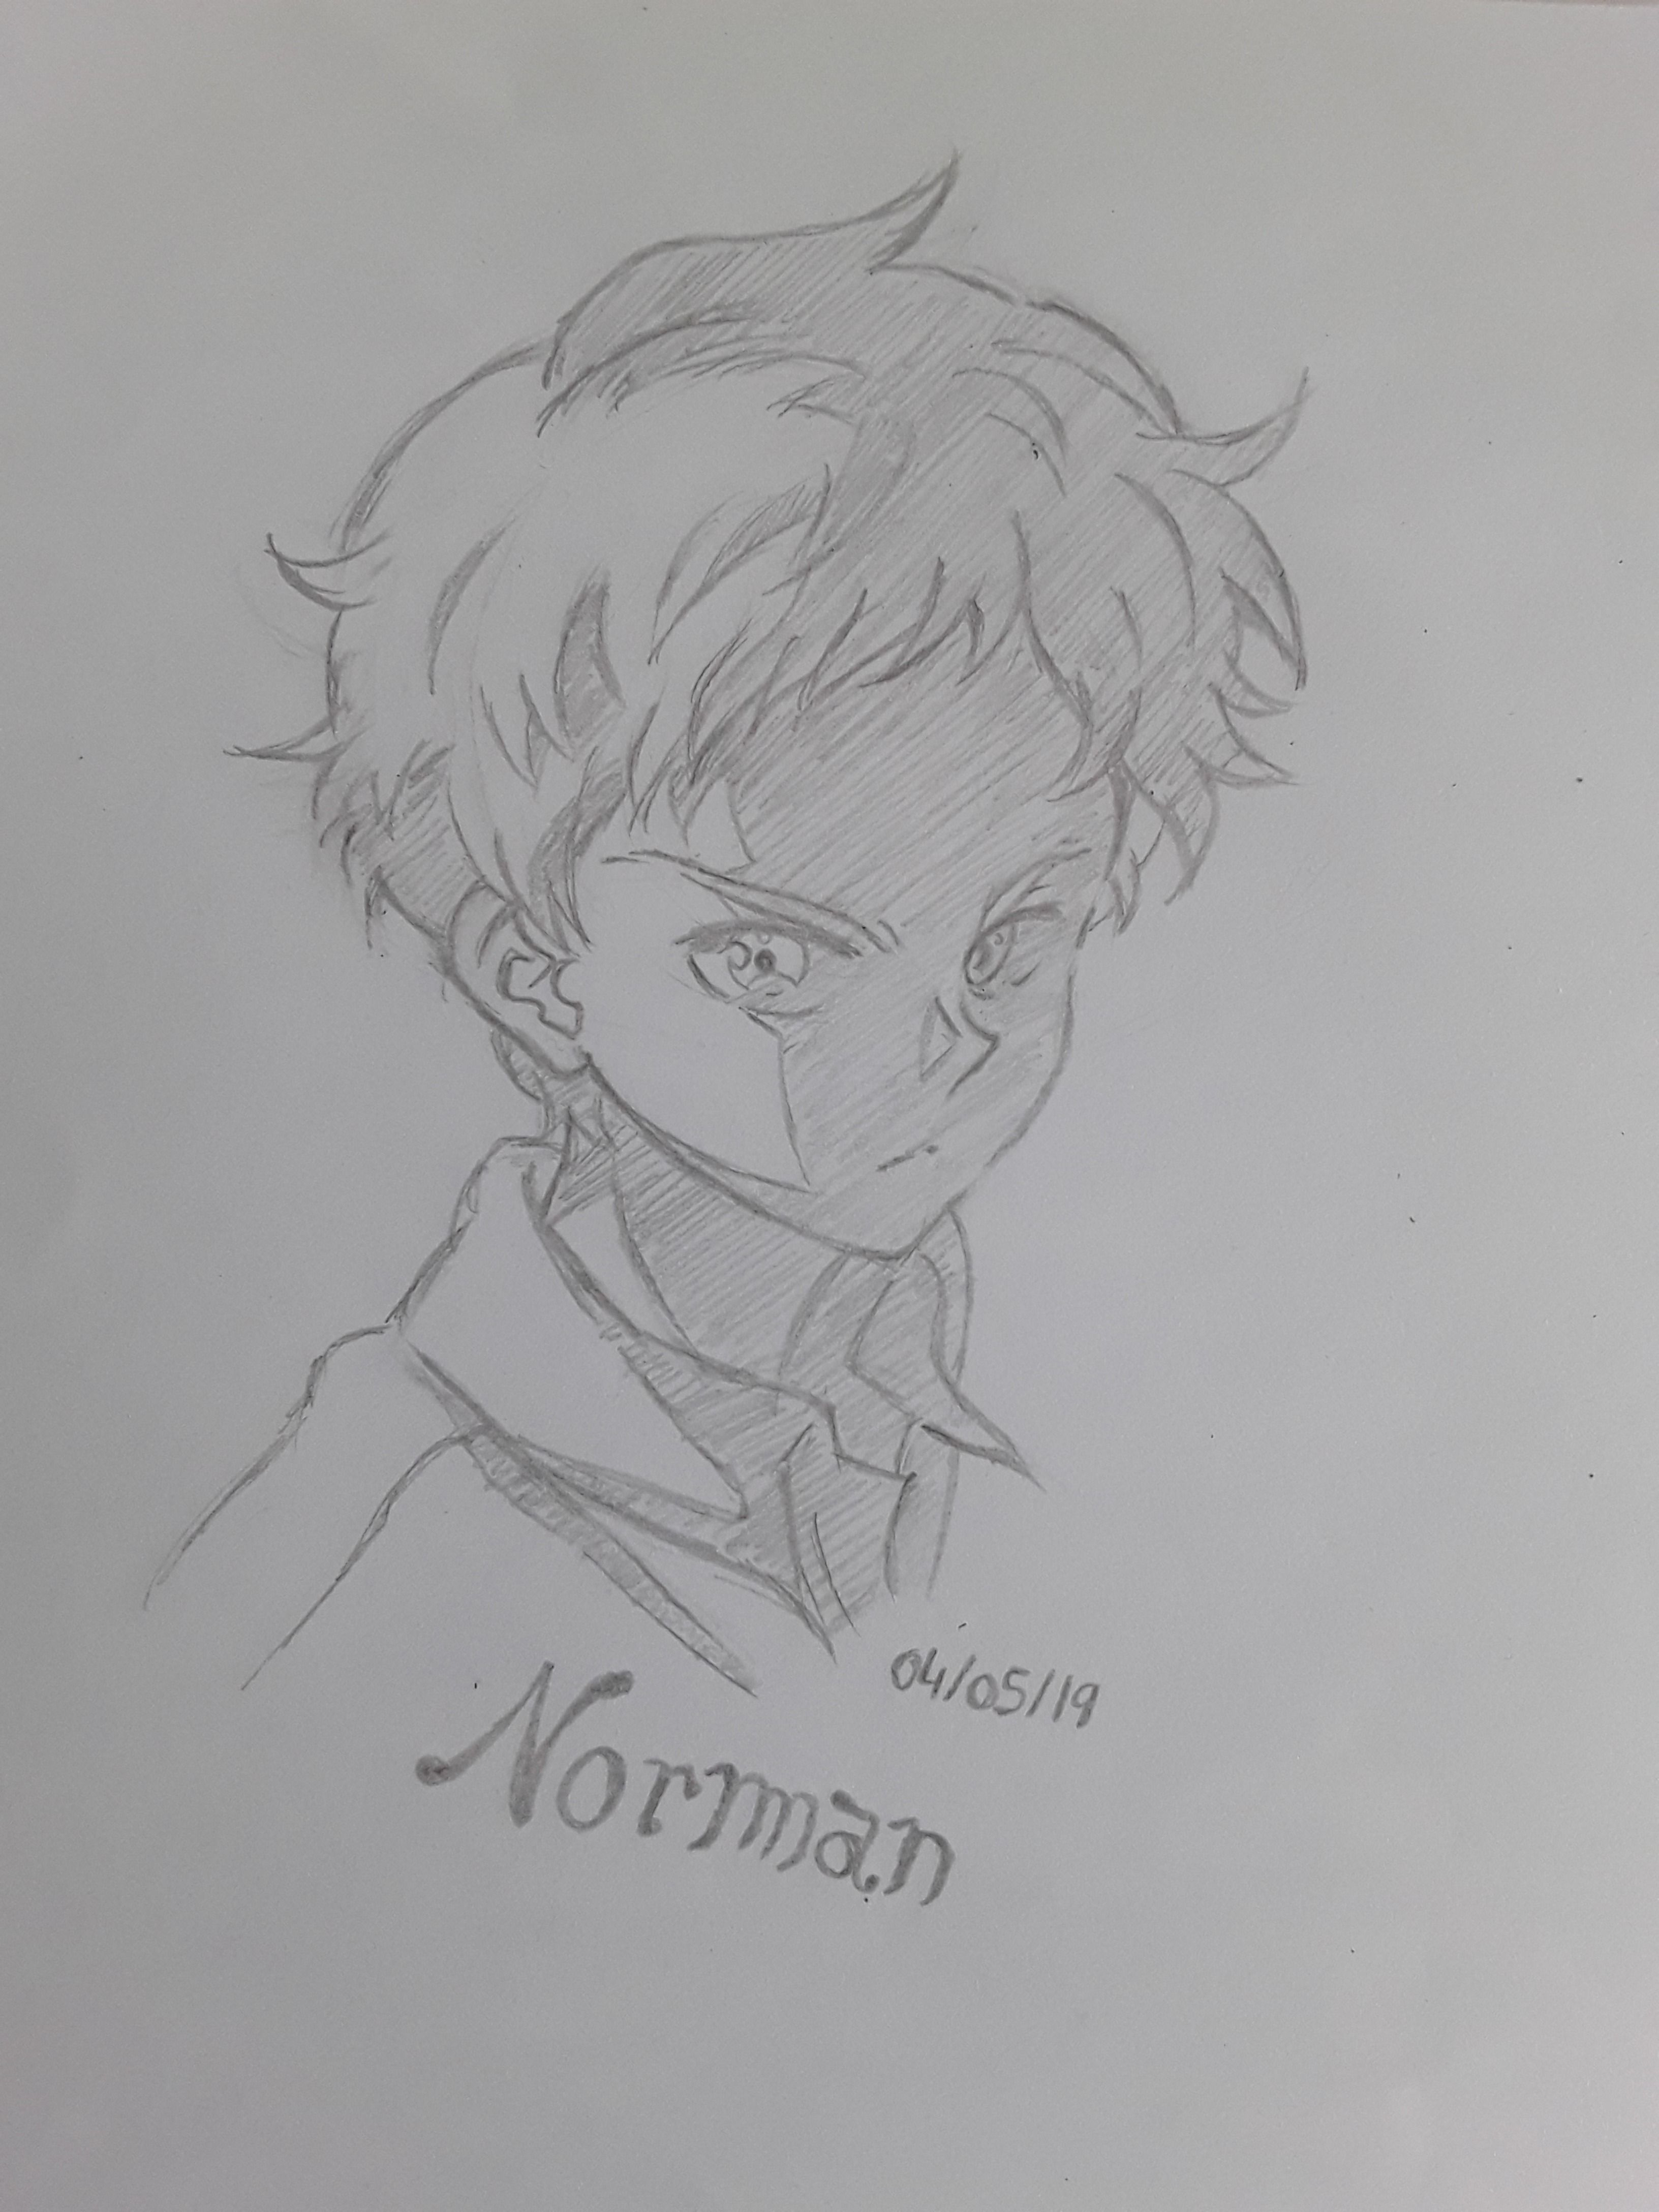 Norman To the anime The Promised Neverland! norman